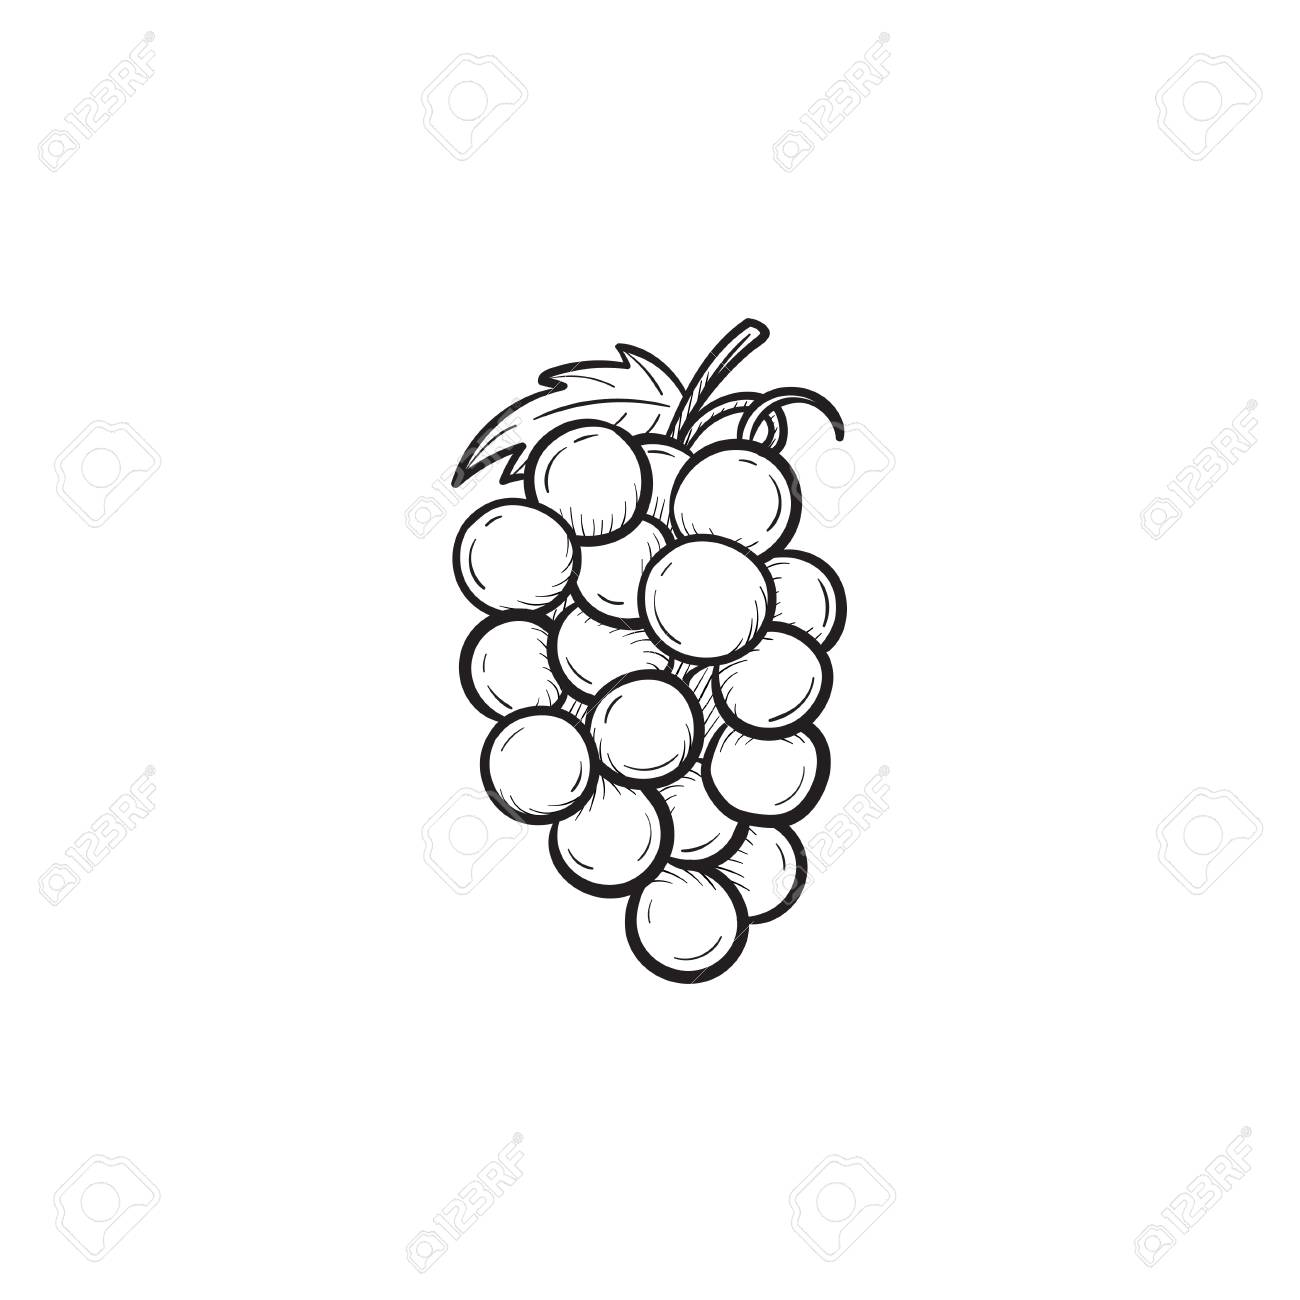 Vector Hand Drawn Bunch Of Grapes Outline Doodle Icon Bunch Royalty Free Cliparts Vectors And Stock Illustration Image 92861794